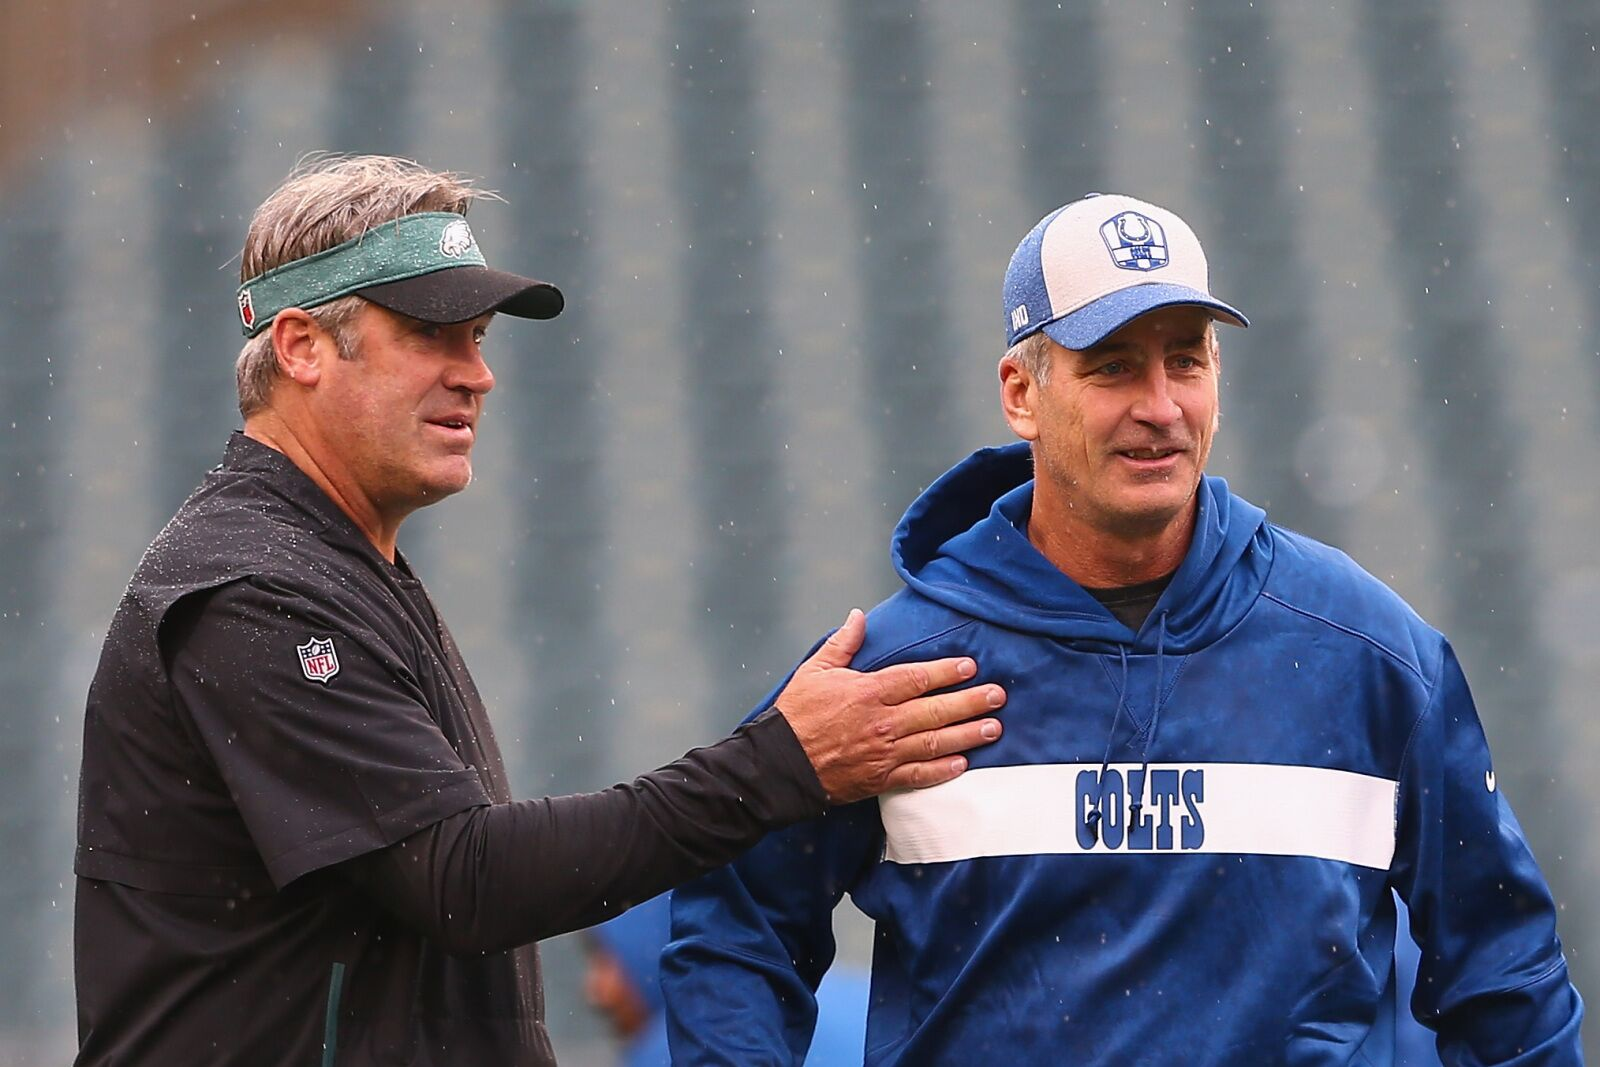 Philadelphia Eagles roundup: Birds earn $274.3M, Doug Pederson's wager